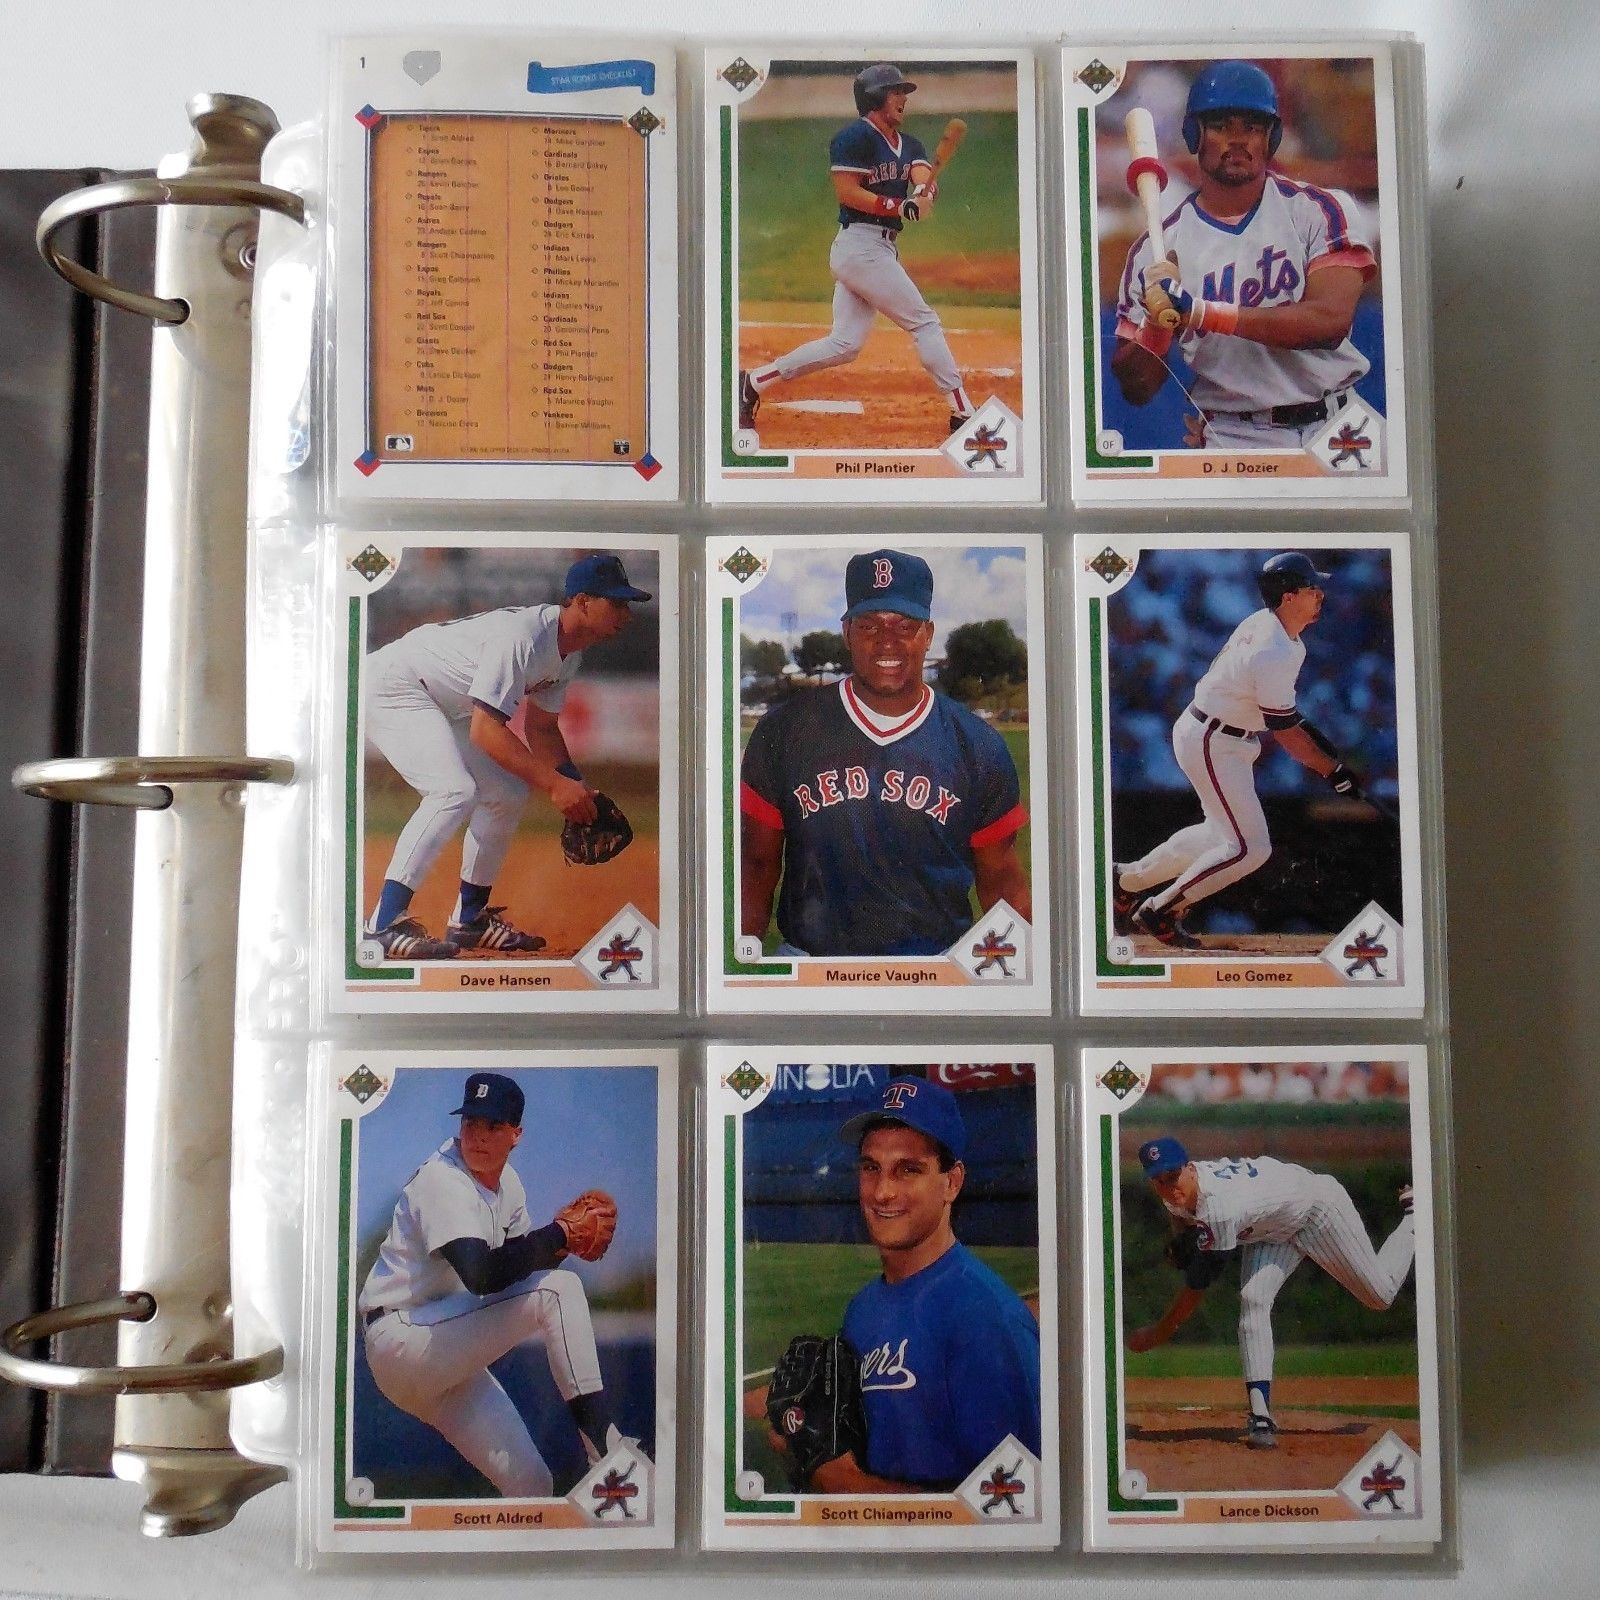 1991 upper deck baseball 800 cards completed collection